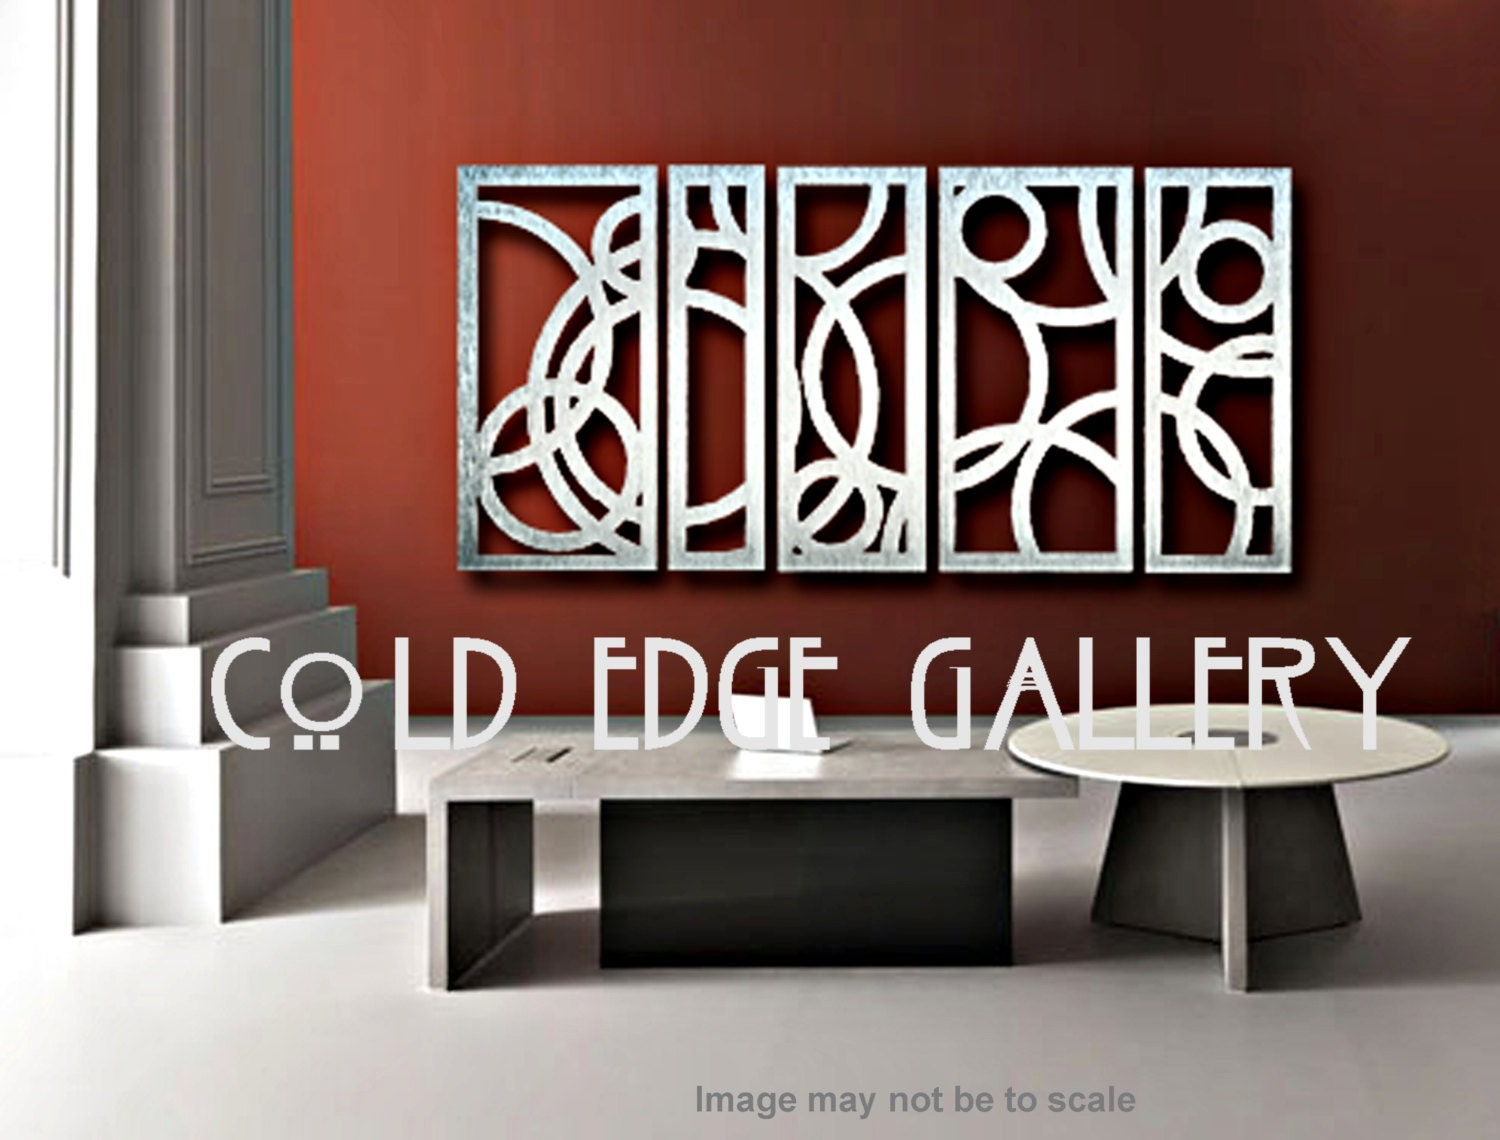 Extra large art metal wall art art decor by coldedgegallery for Big wall art